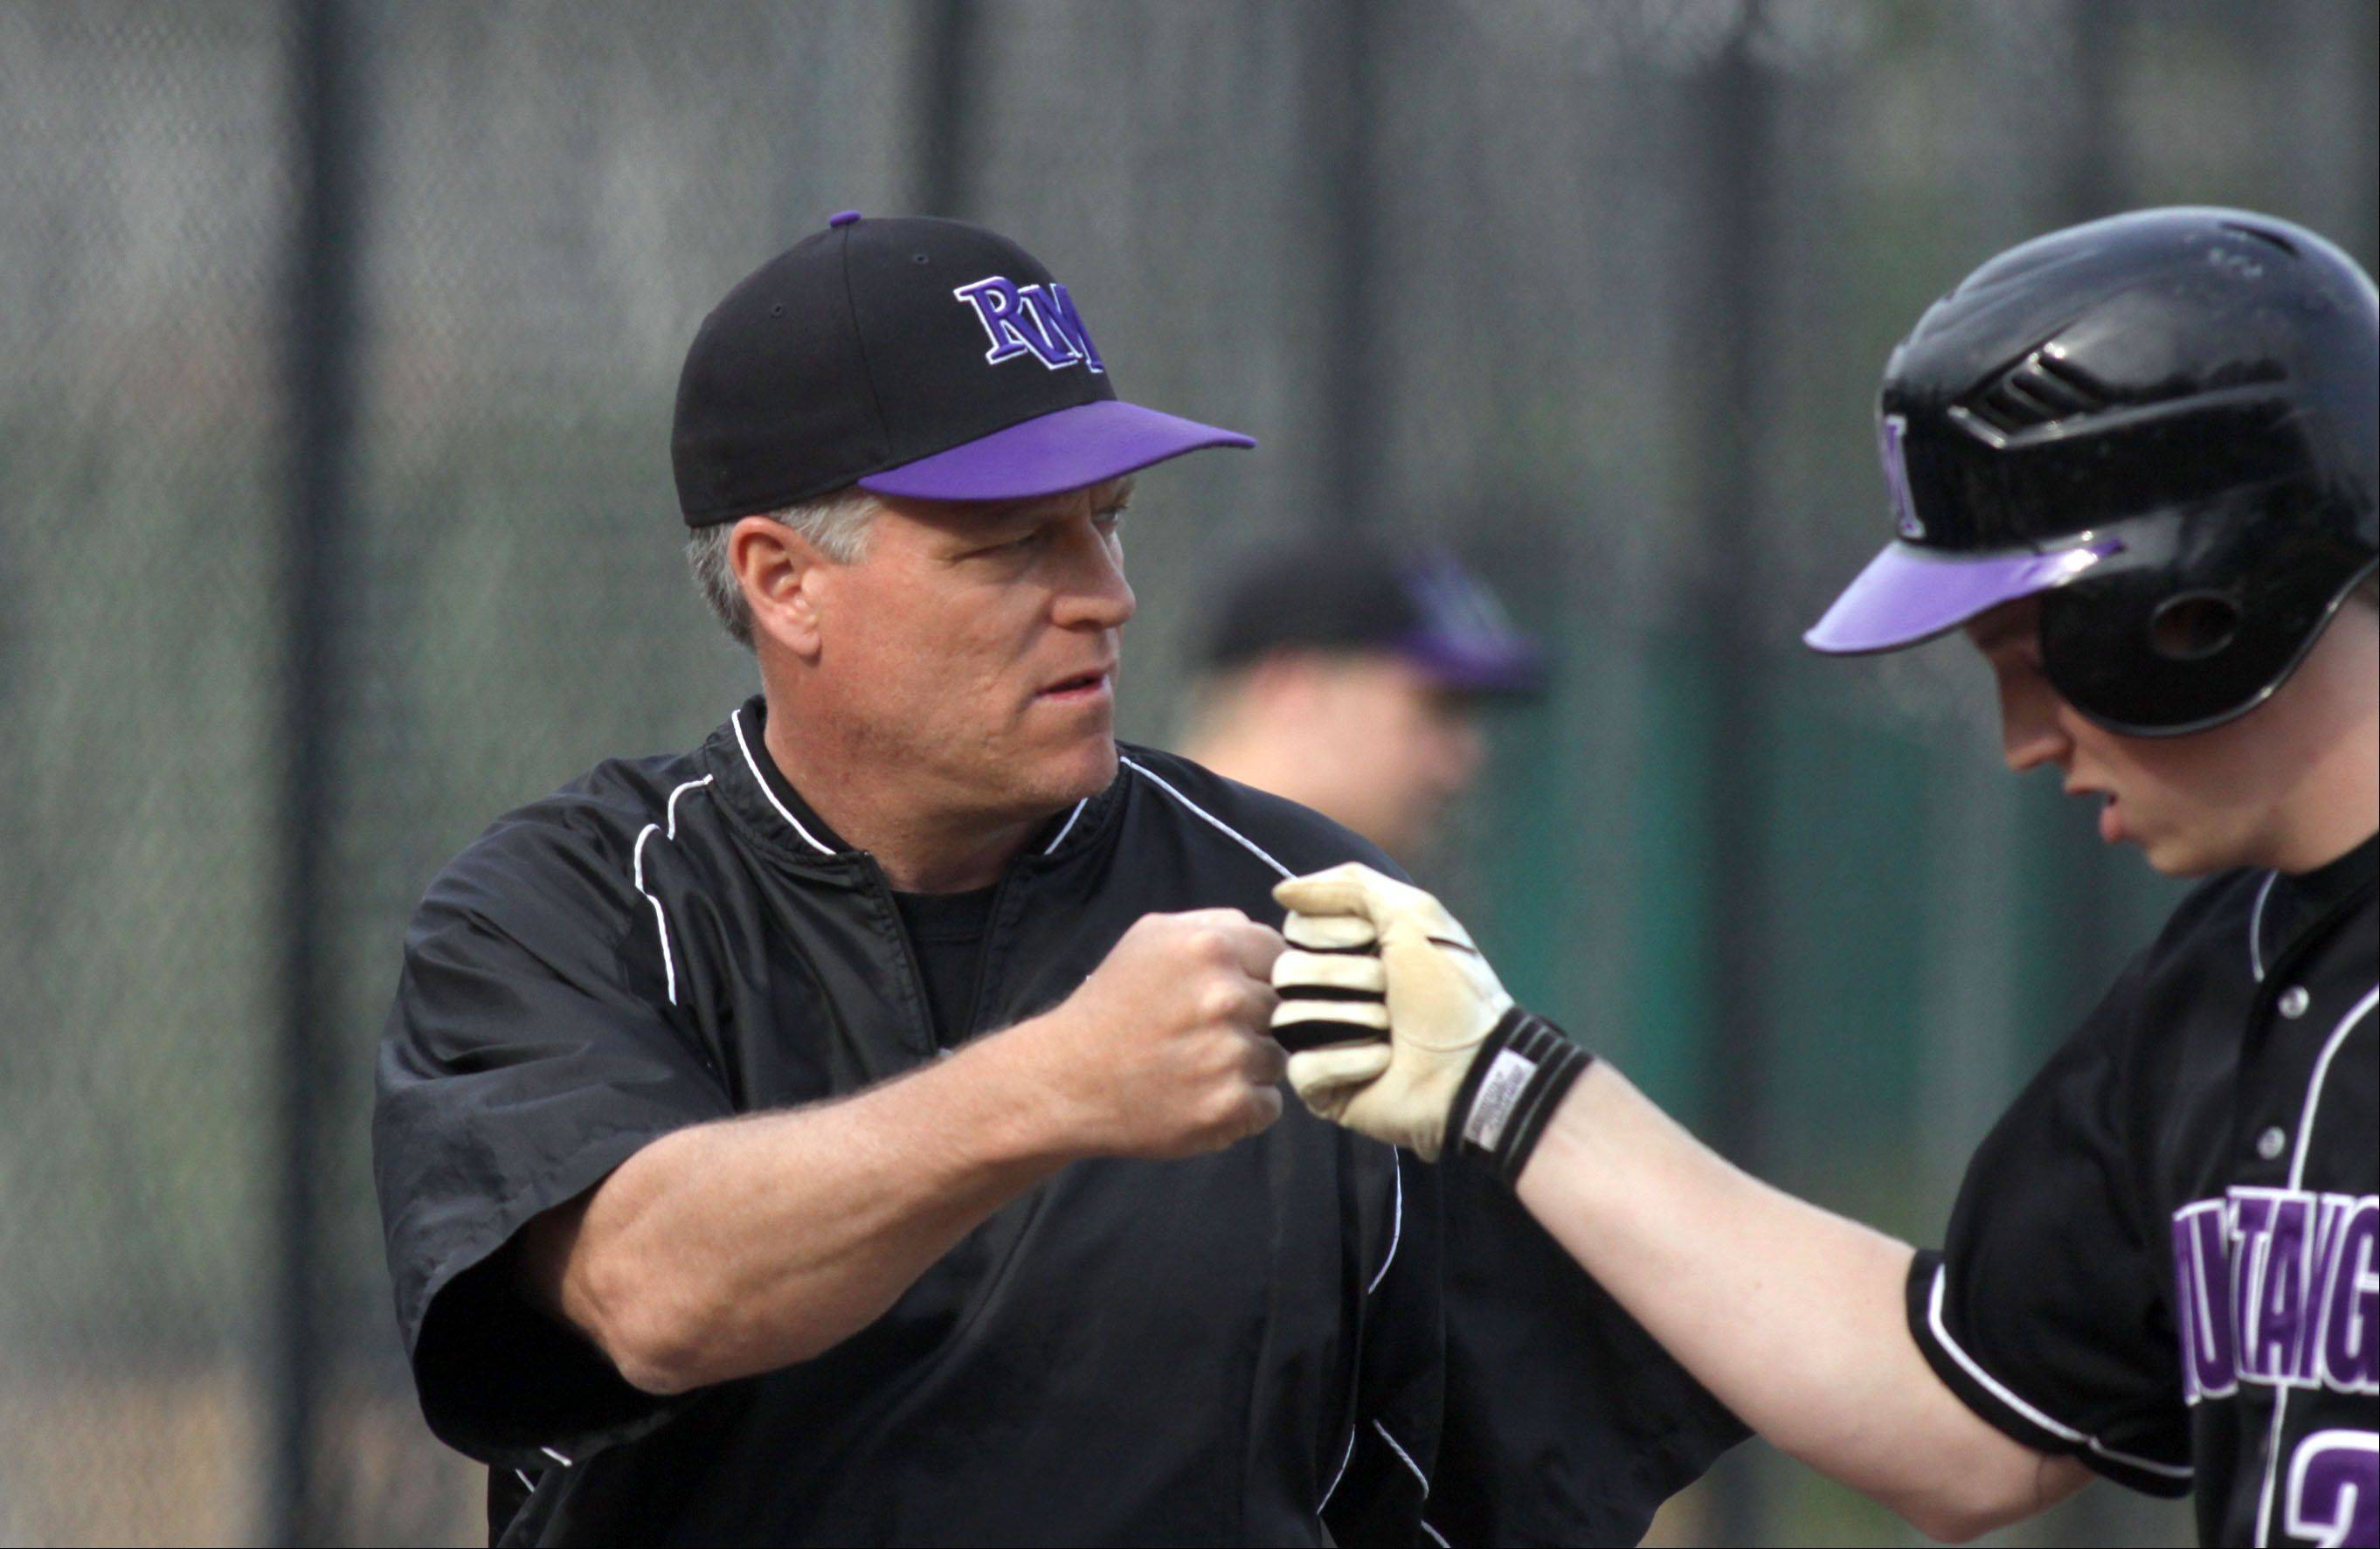 Rolling Meadows head coach and former big-leaguer Jim Lindeman, left, offers encouragement to Dan Hendricks against Elk Grove at South Salk Park in Rolling Meadows on Monday evening.